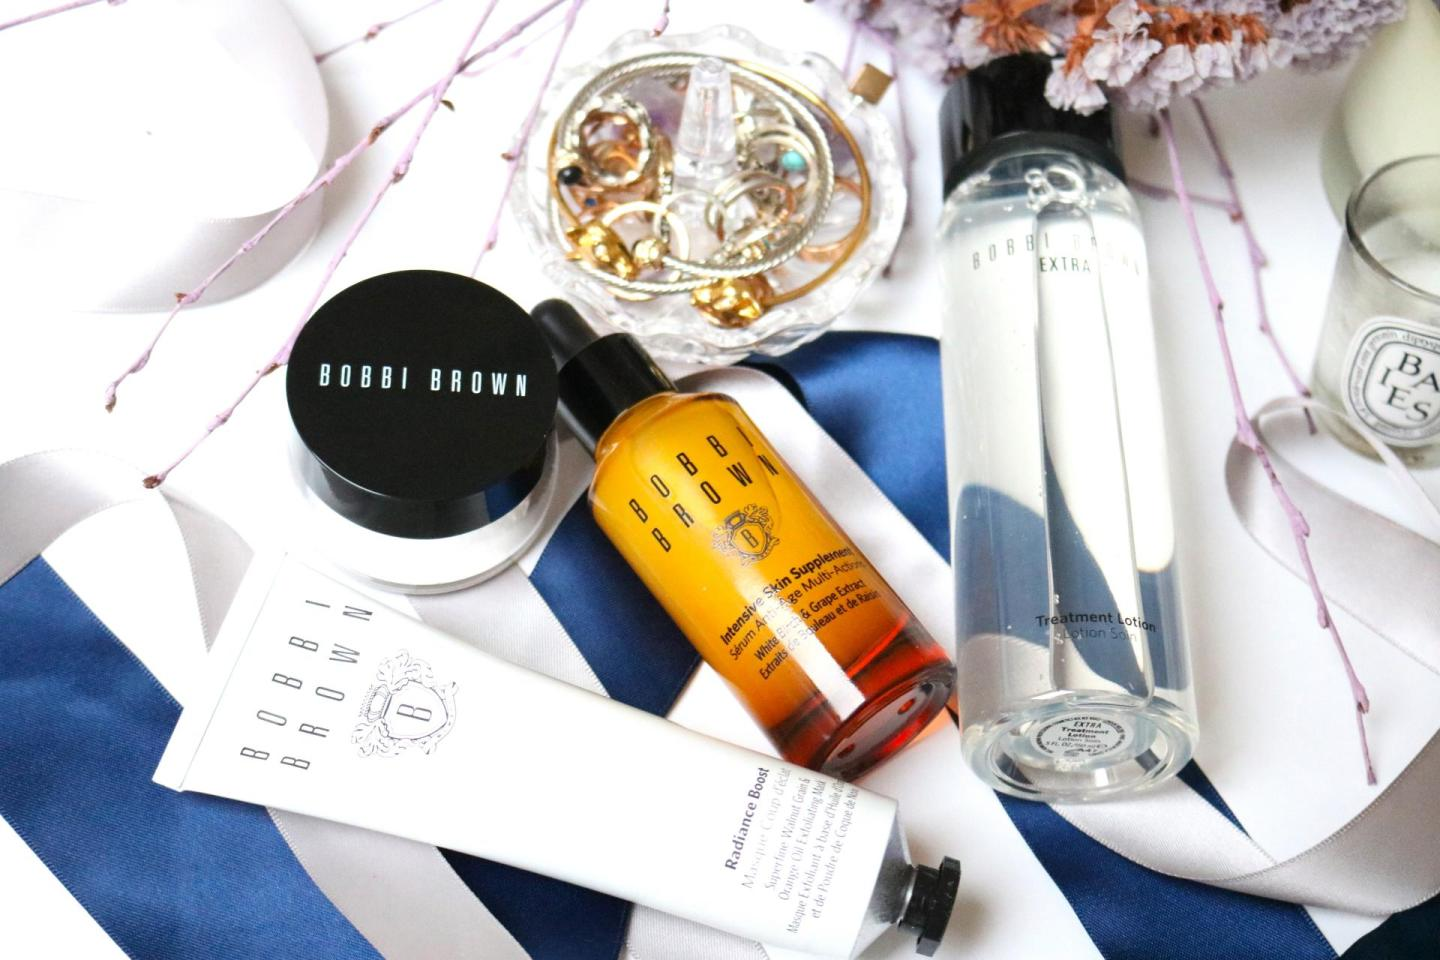 Bobbi Brown takes you into their Wellness Box